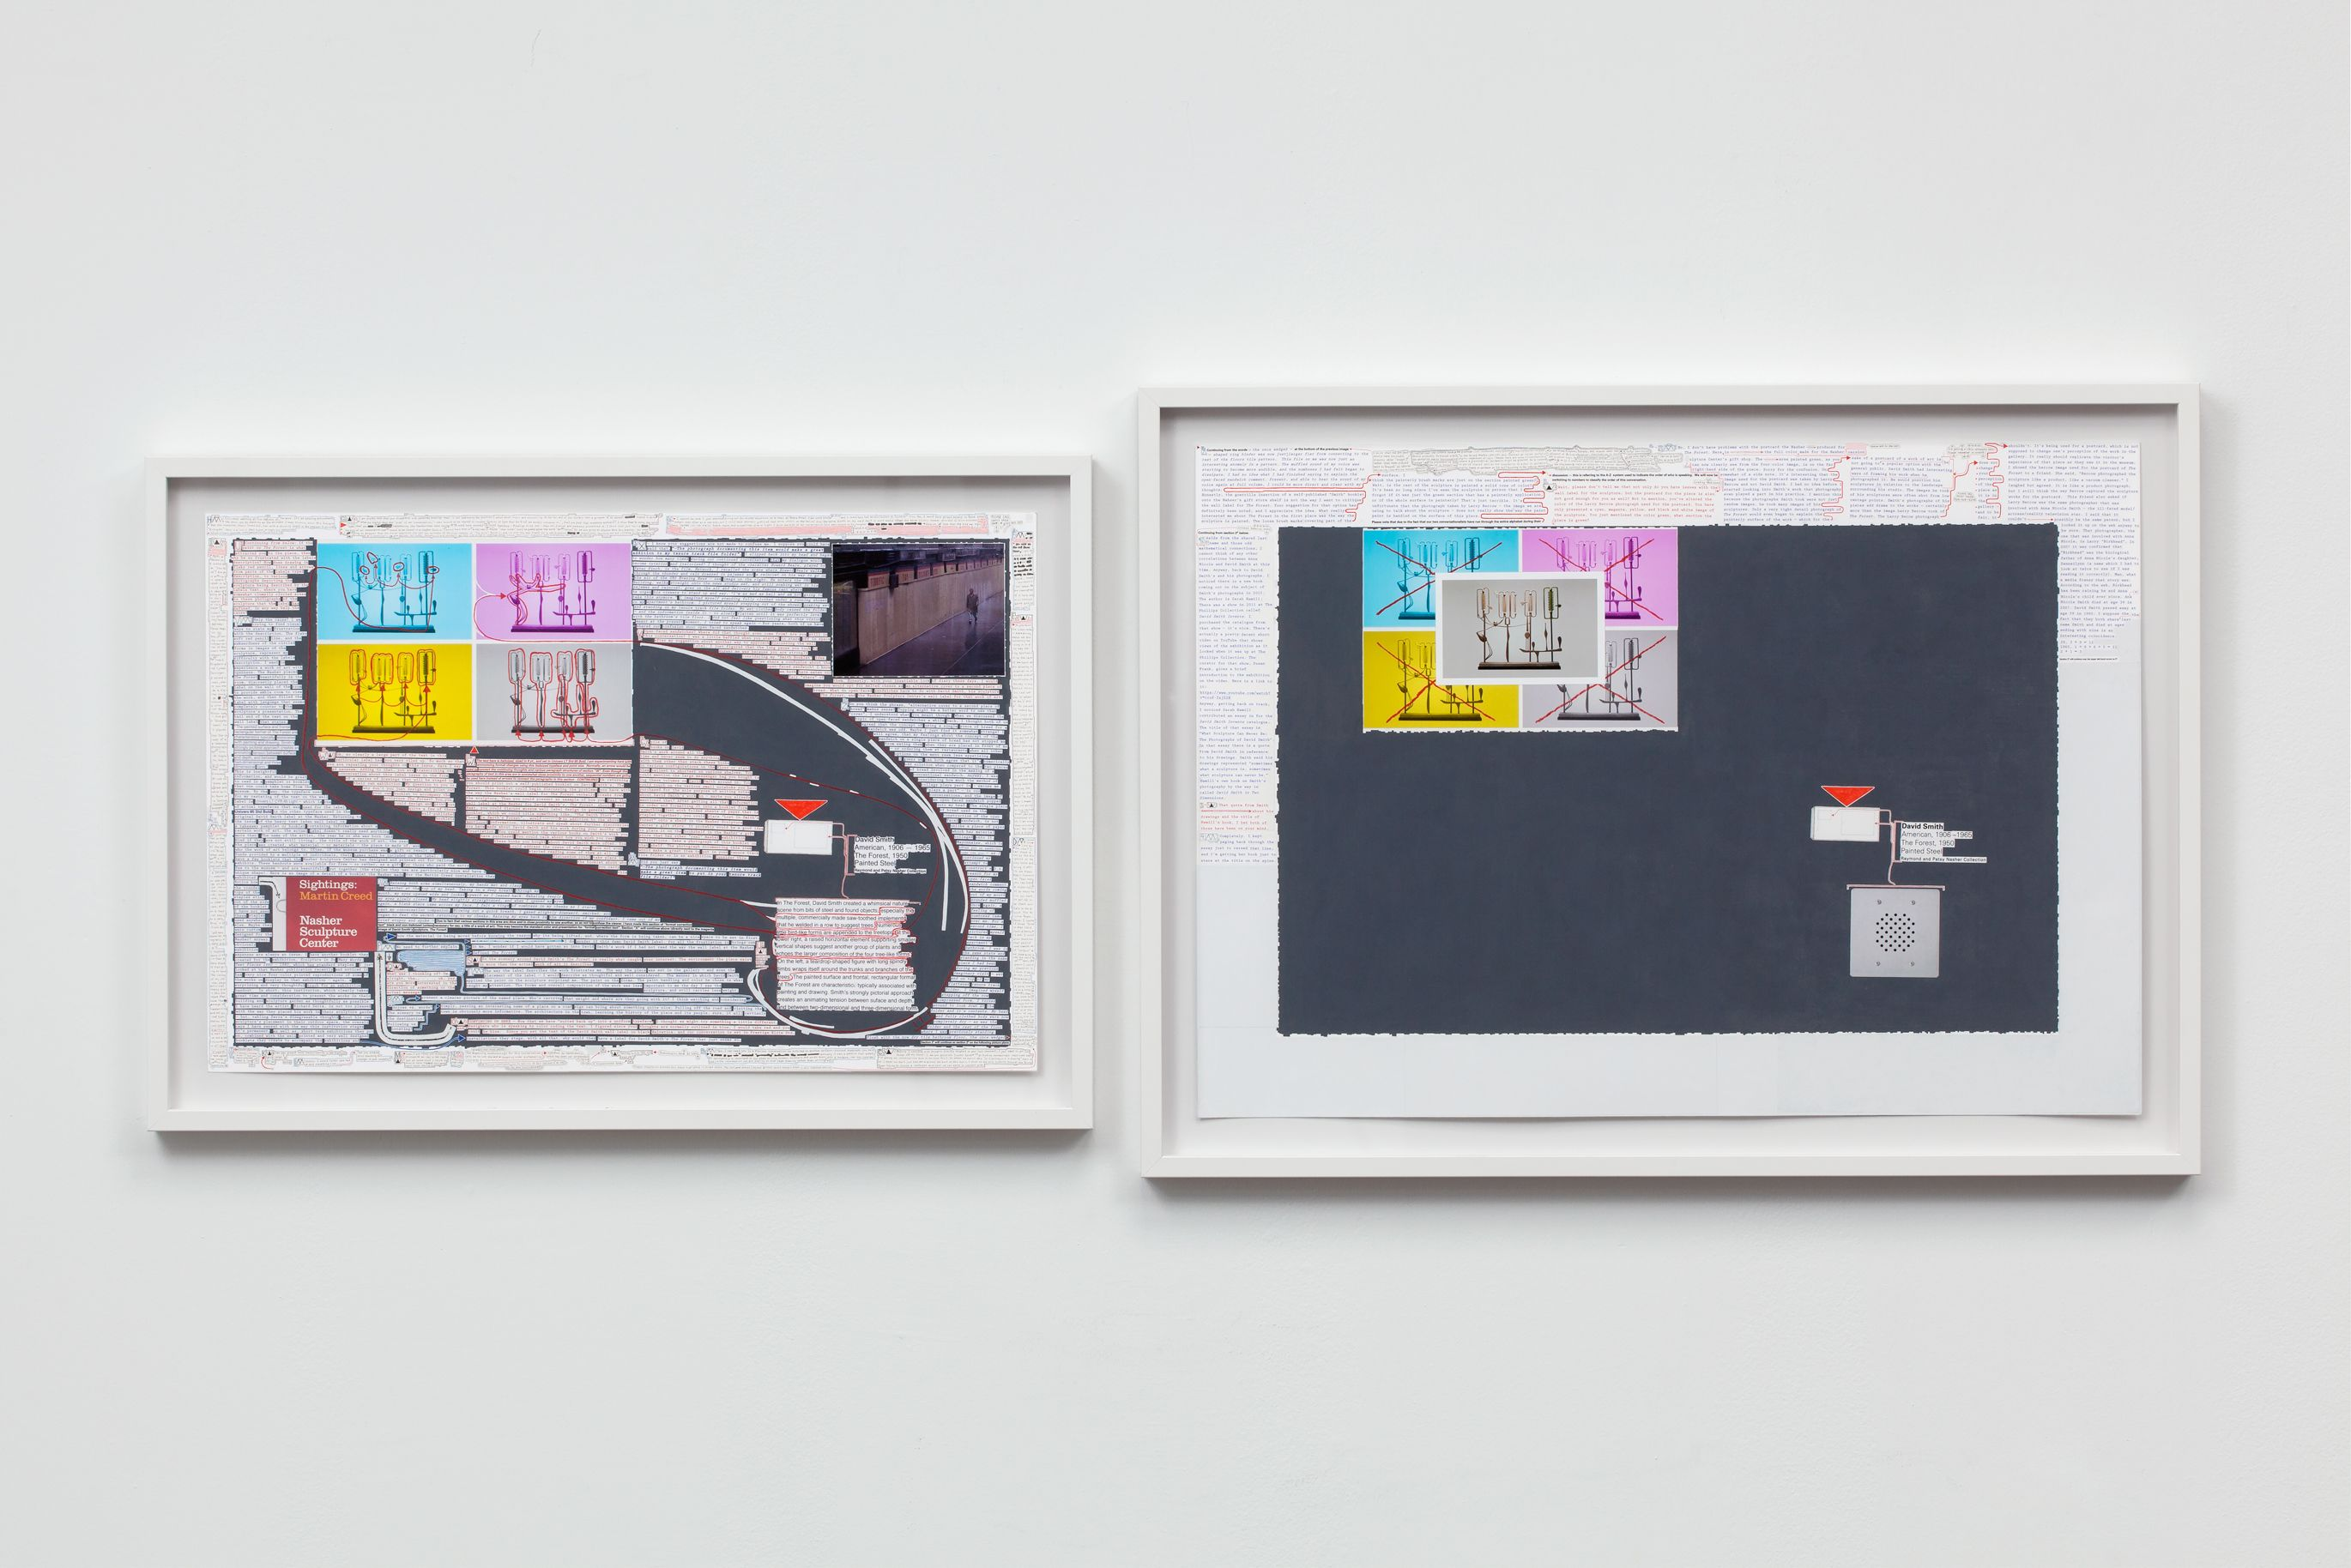 Matthew Sontheimer, Driving Sideways, 2015, diptych with mixed media on paper, Left panel: 19 7/8 x 29 ½ inches, Right panel: 24 x 33 ½ inches